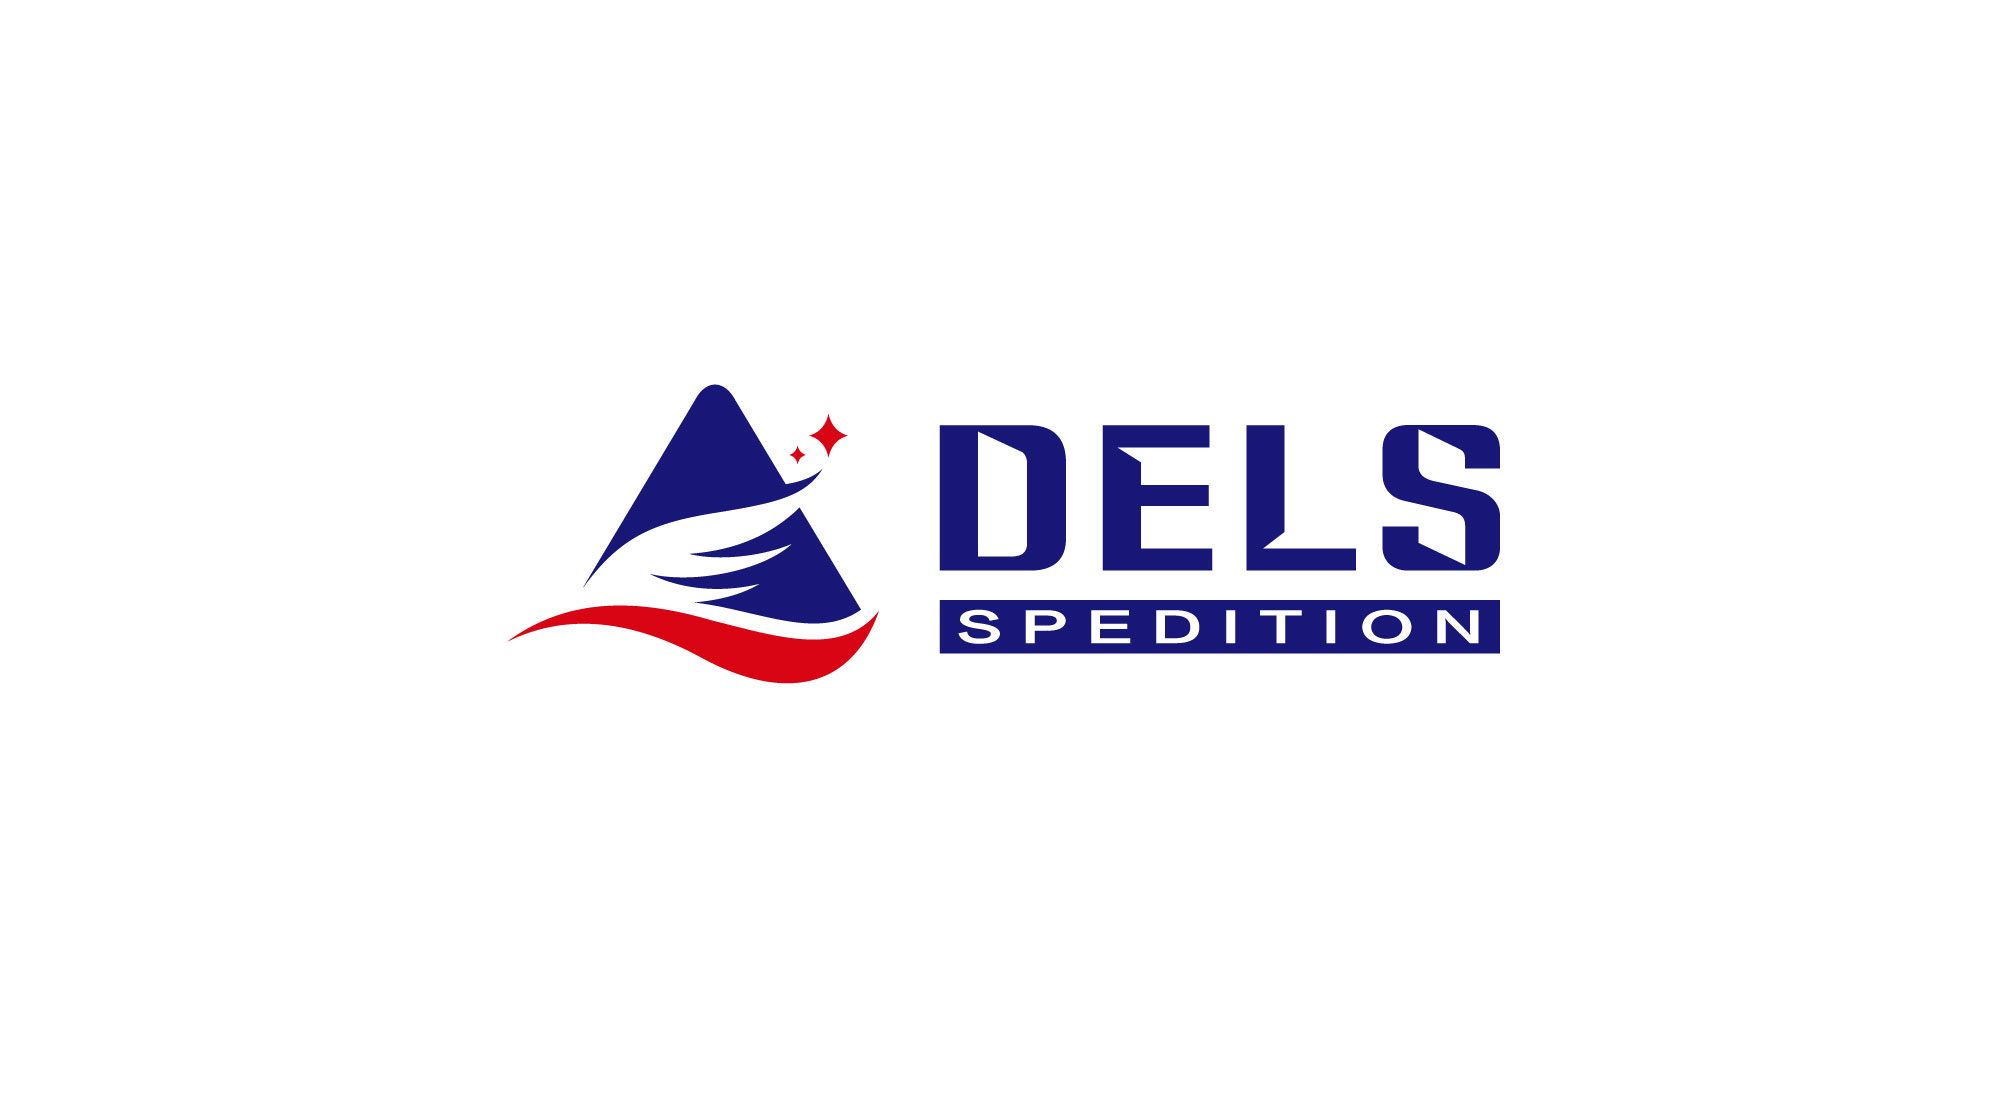 Dels Spedition GmbH